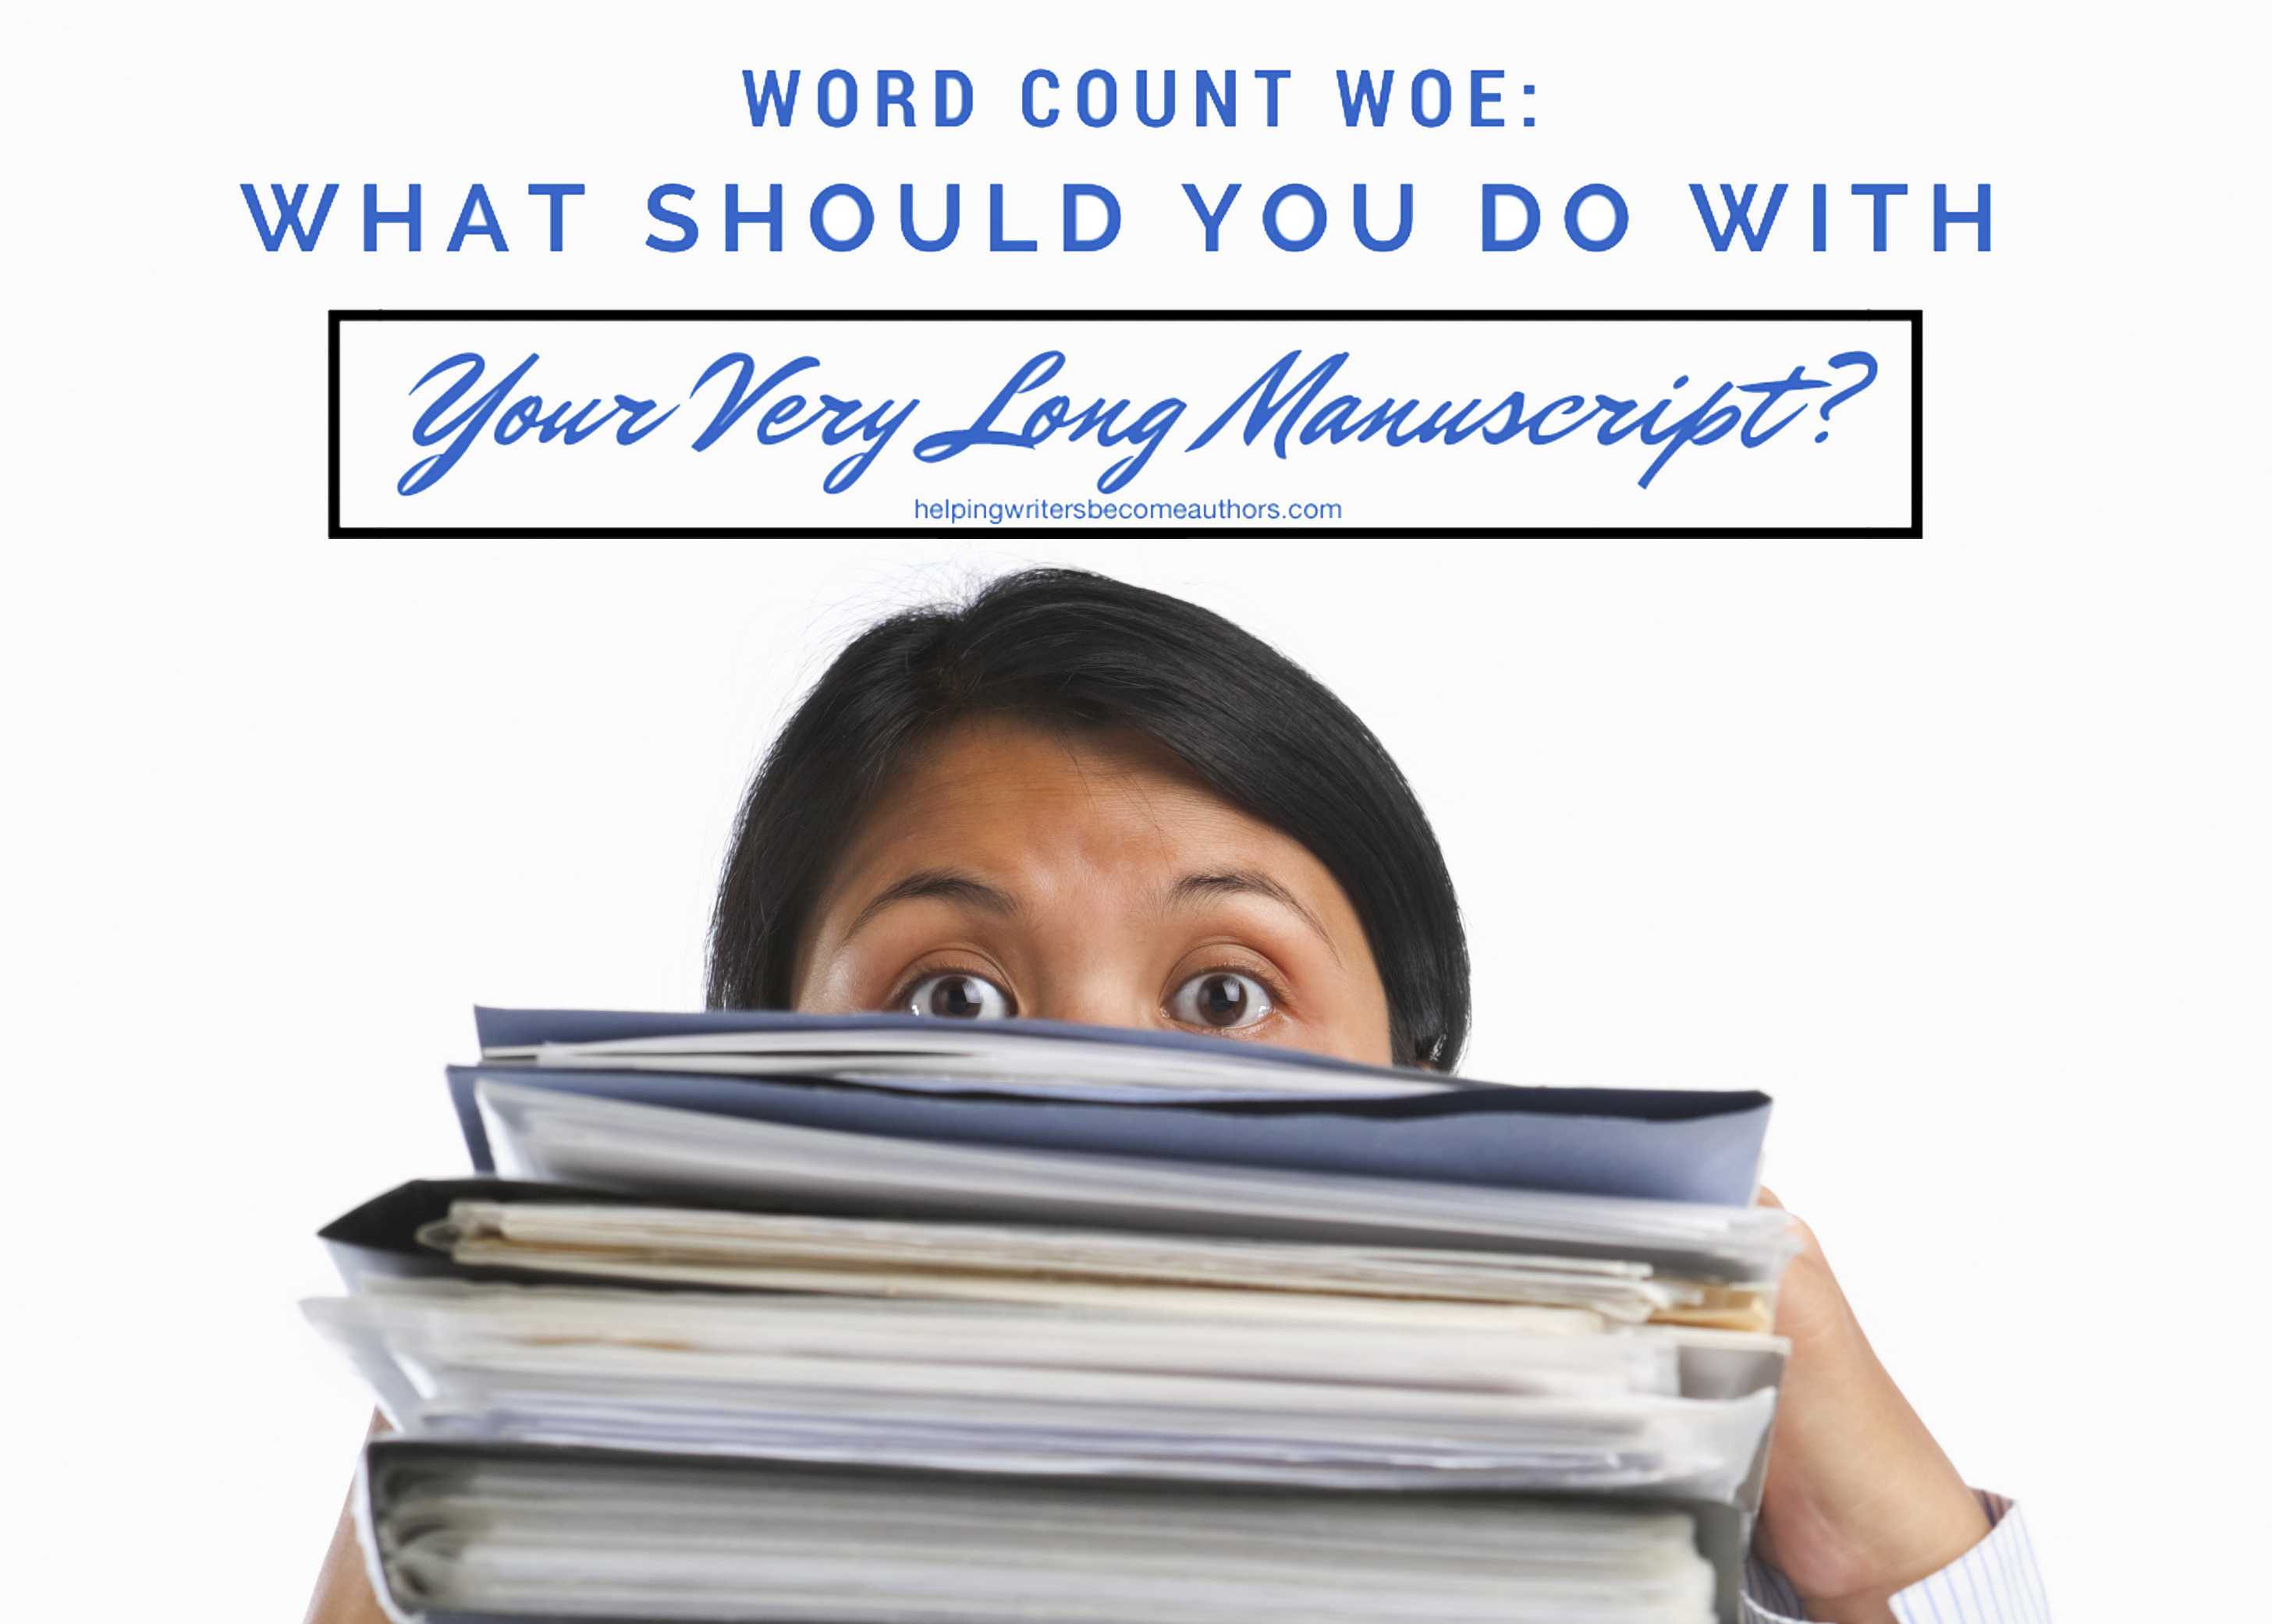 Word Count Woe: What Should You Do With Your Very Long Manuscript